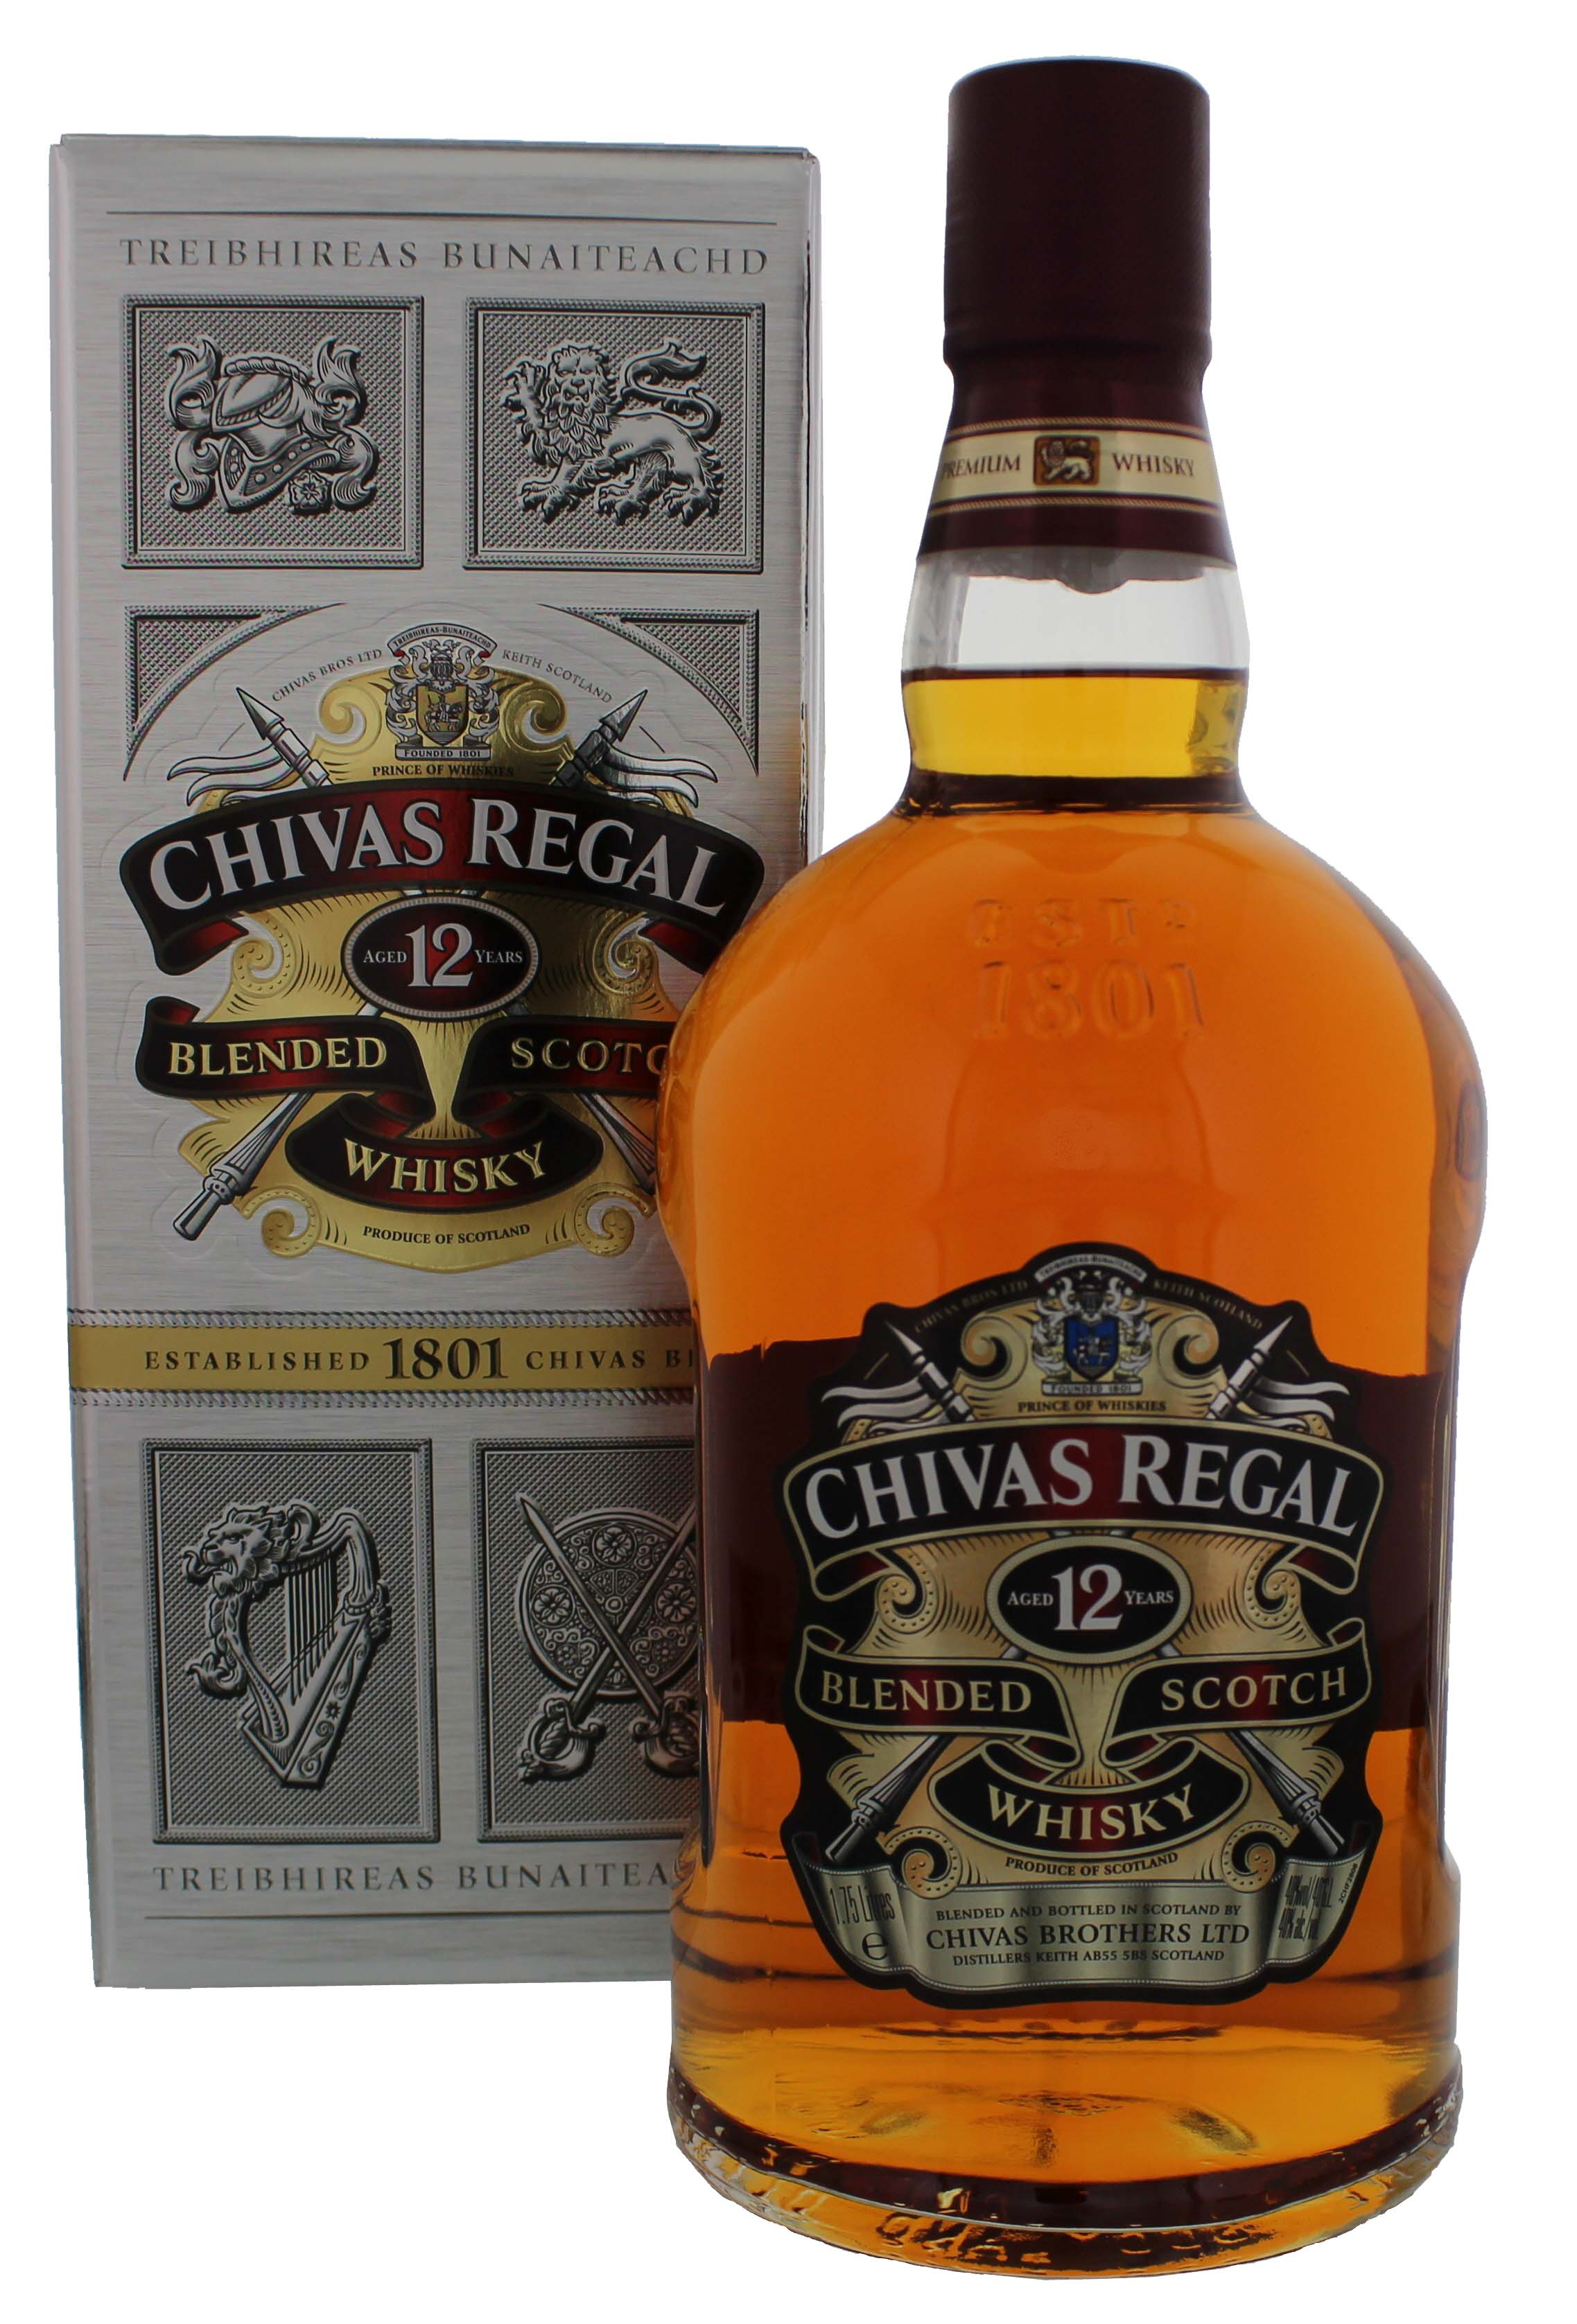 Chivas regal scotch whisky 12 jahre 1 75 liter kaufen whisky online shop - Chivas regal 18 1 liter price ...